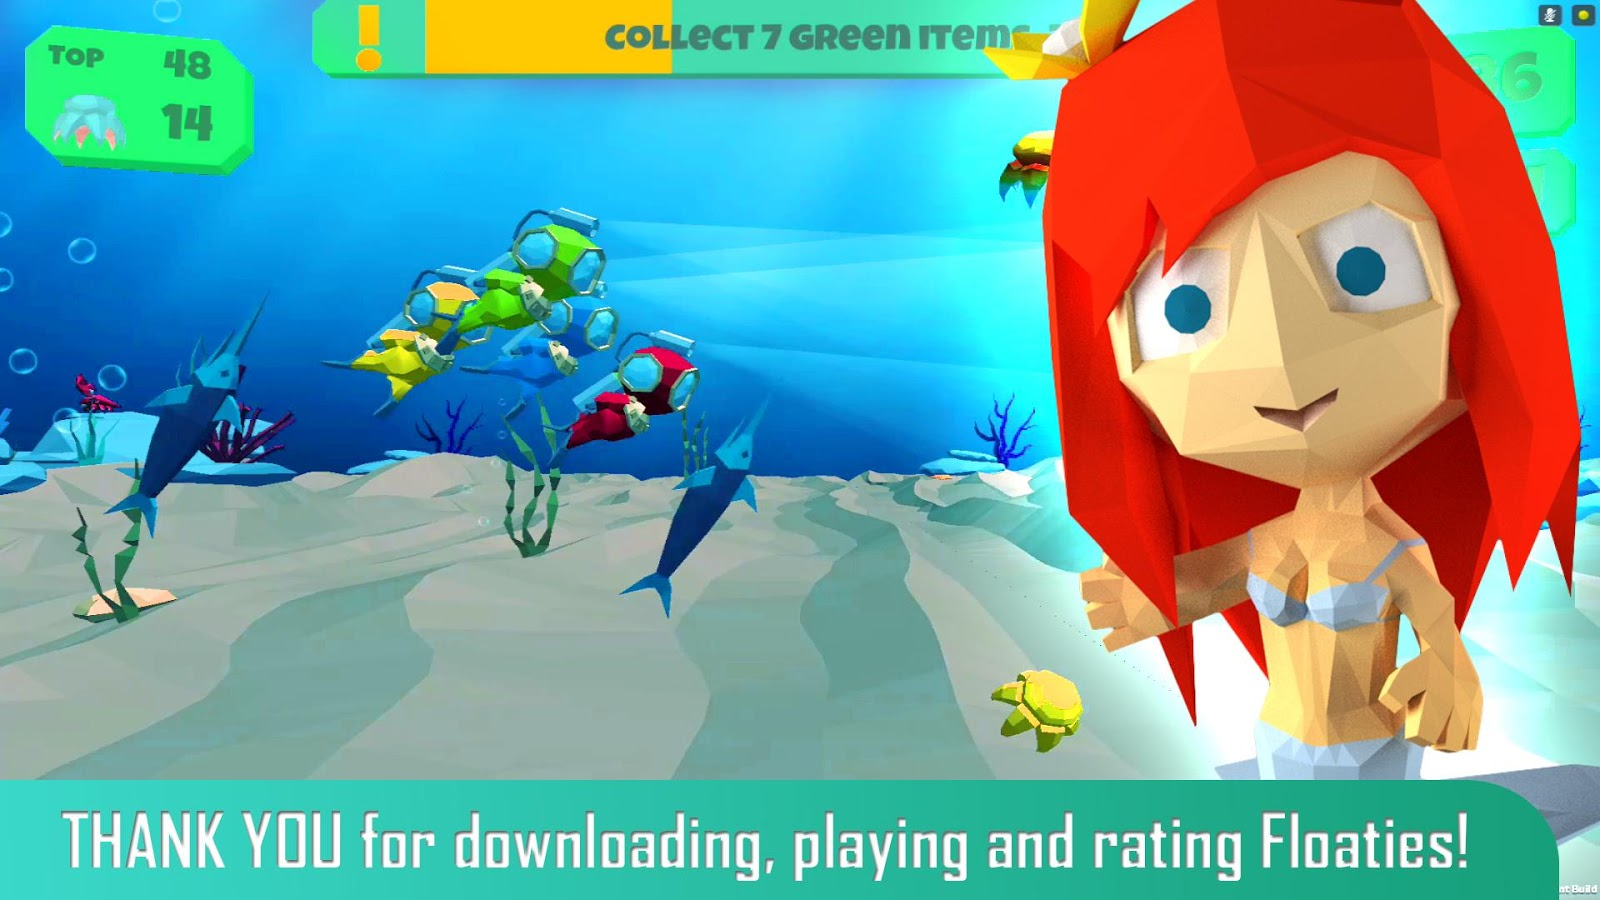 Floaties: Endless Flying Game Screenshot 7